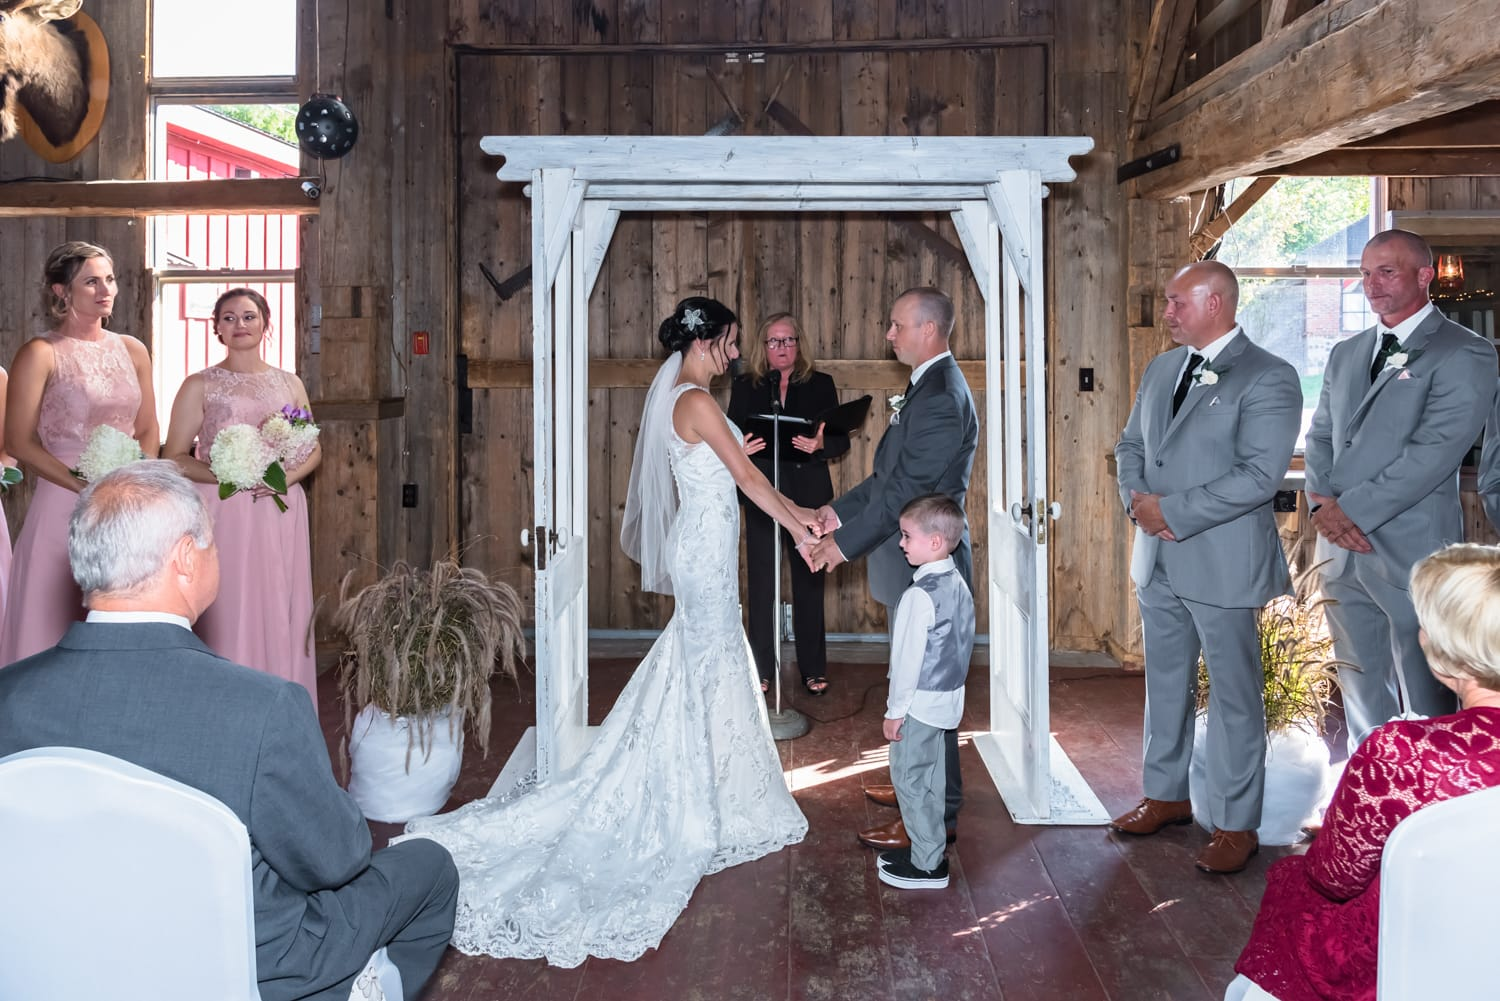 The bride and groom under the wedding arch during their wedding ceremony at the Old Orchard Inn.